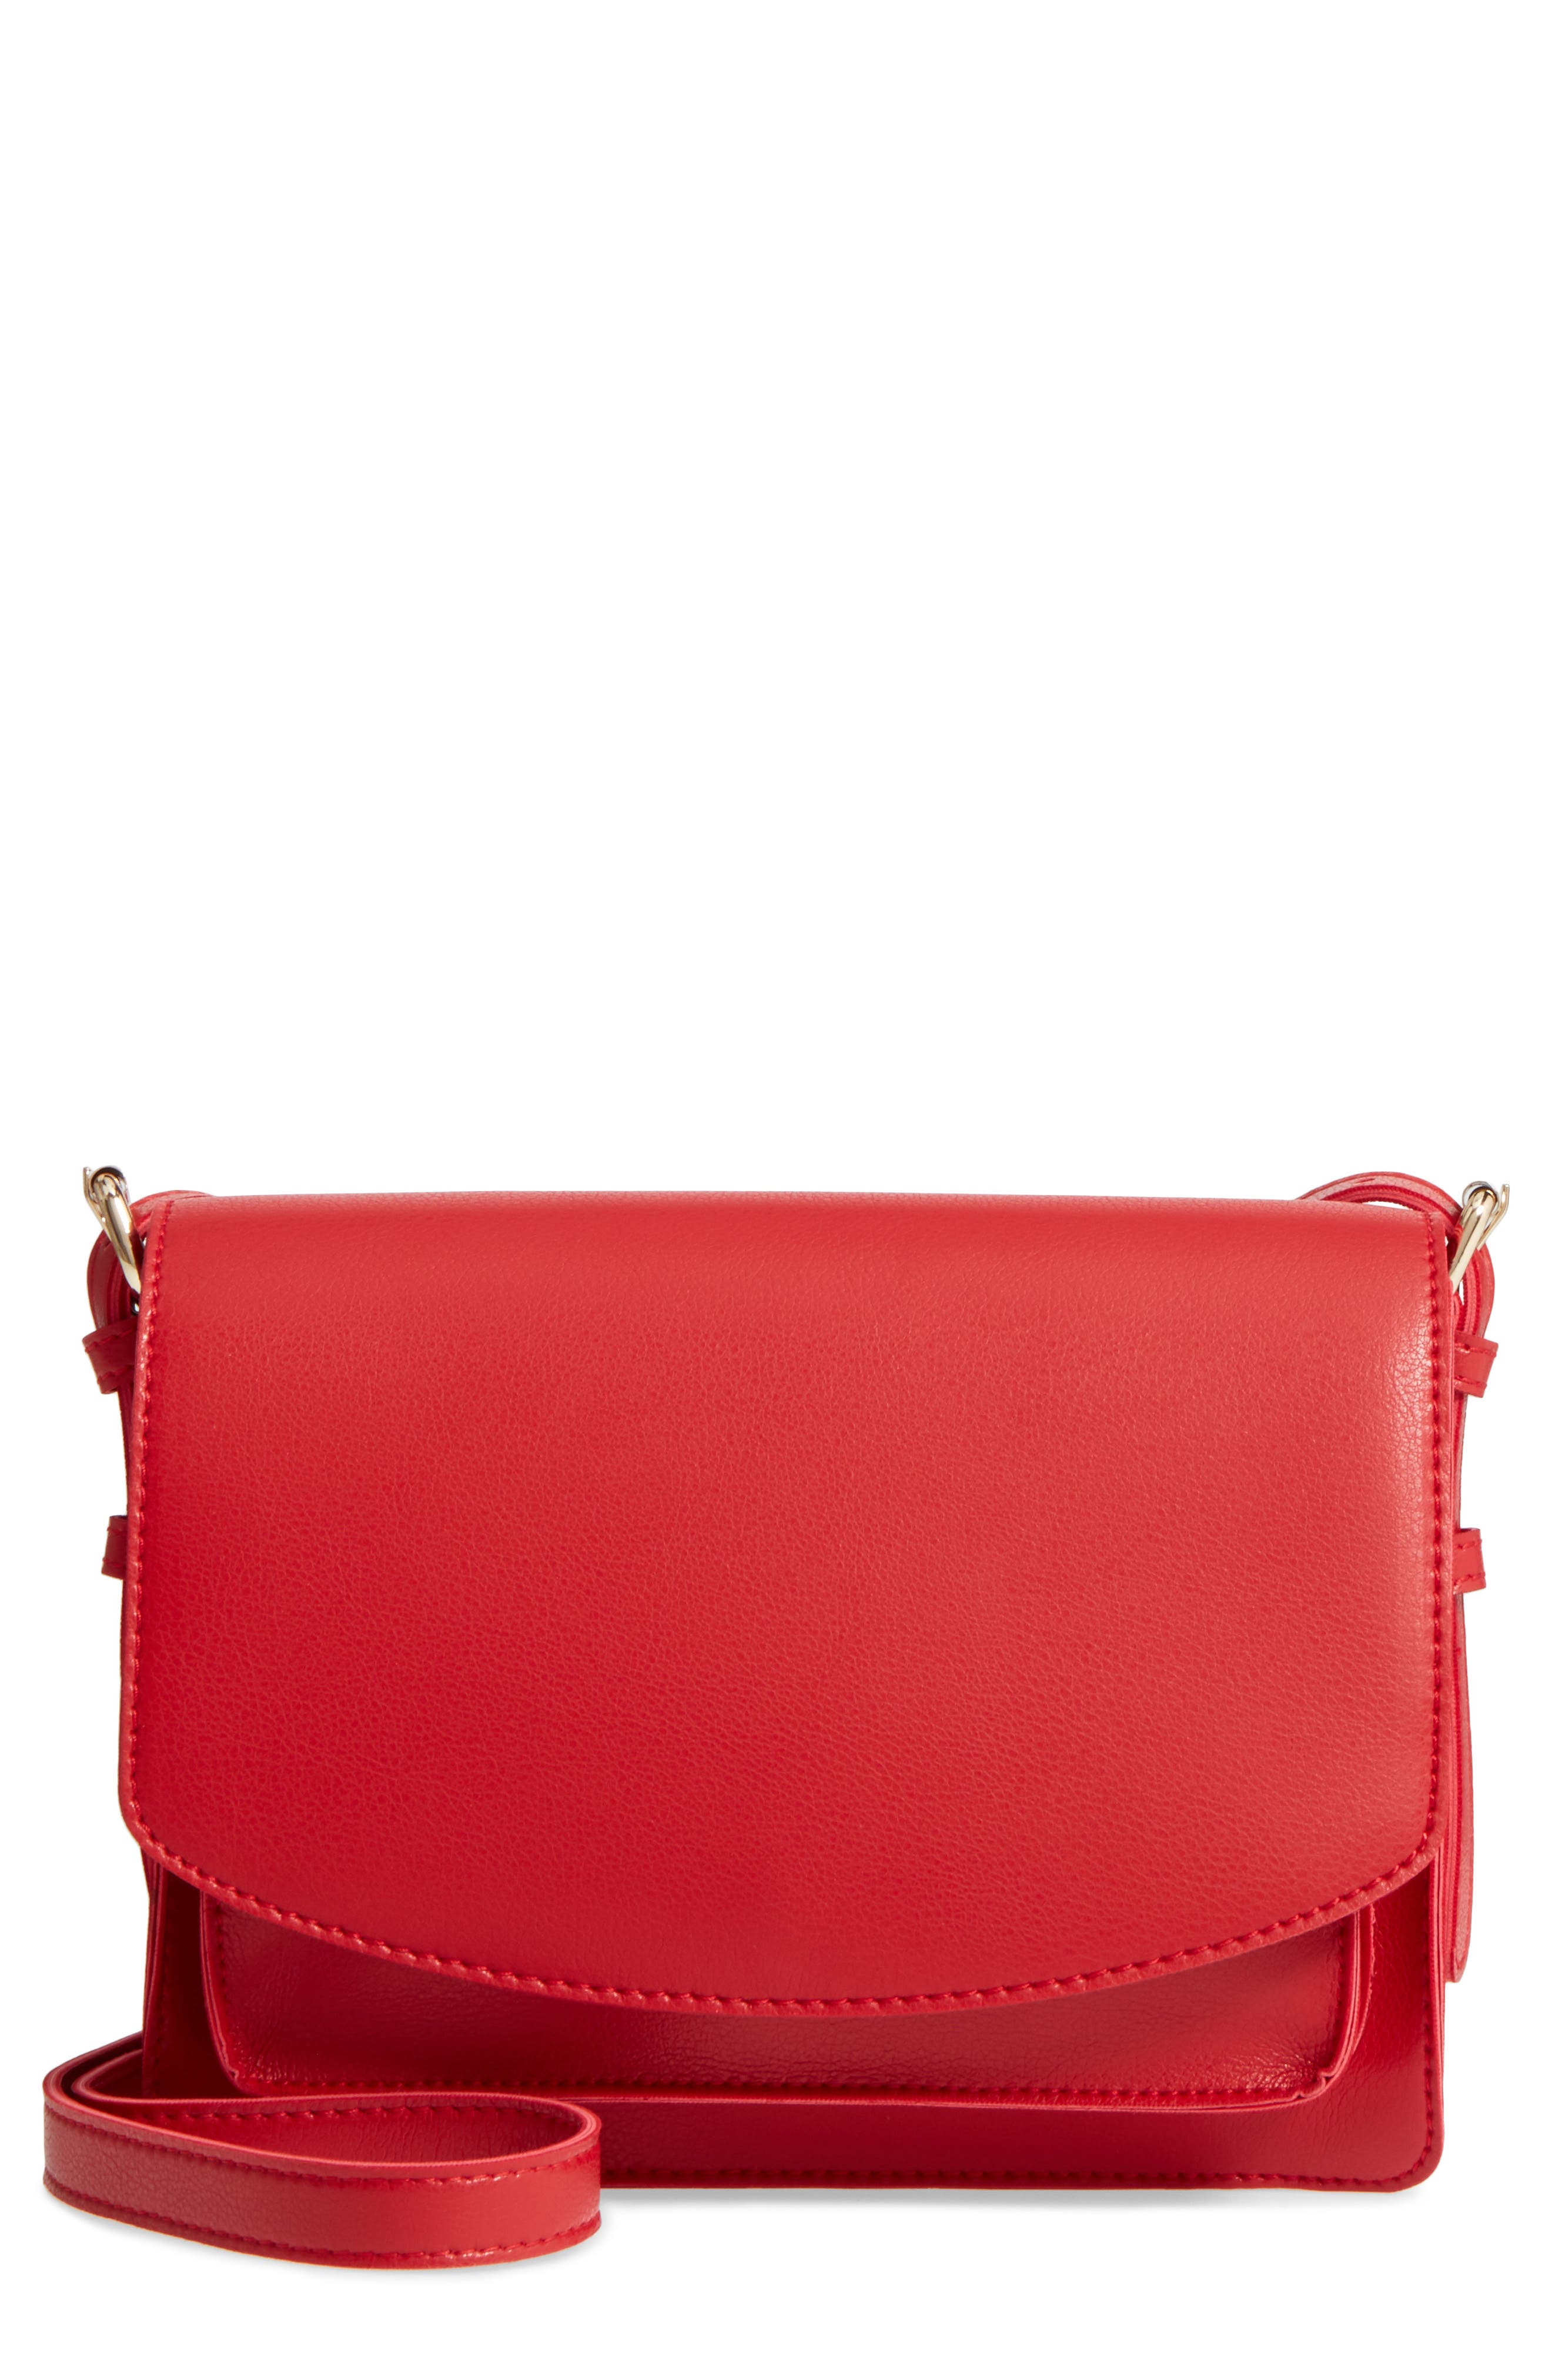 SOLE SOCIETY Michelle Faux Leather Crossbody Bag